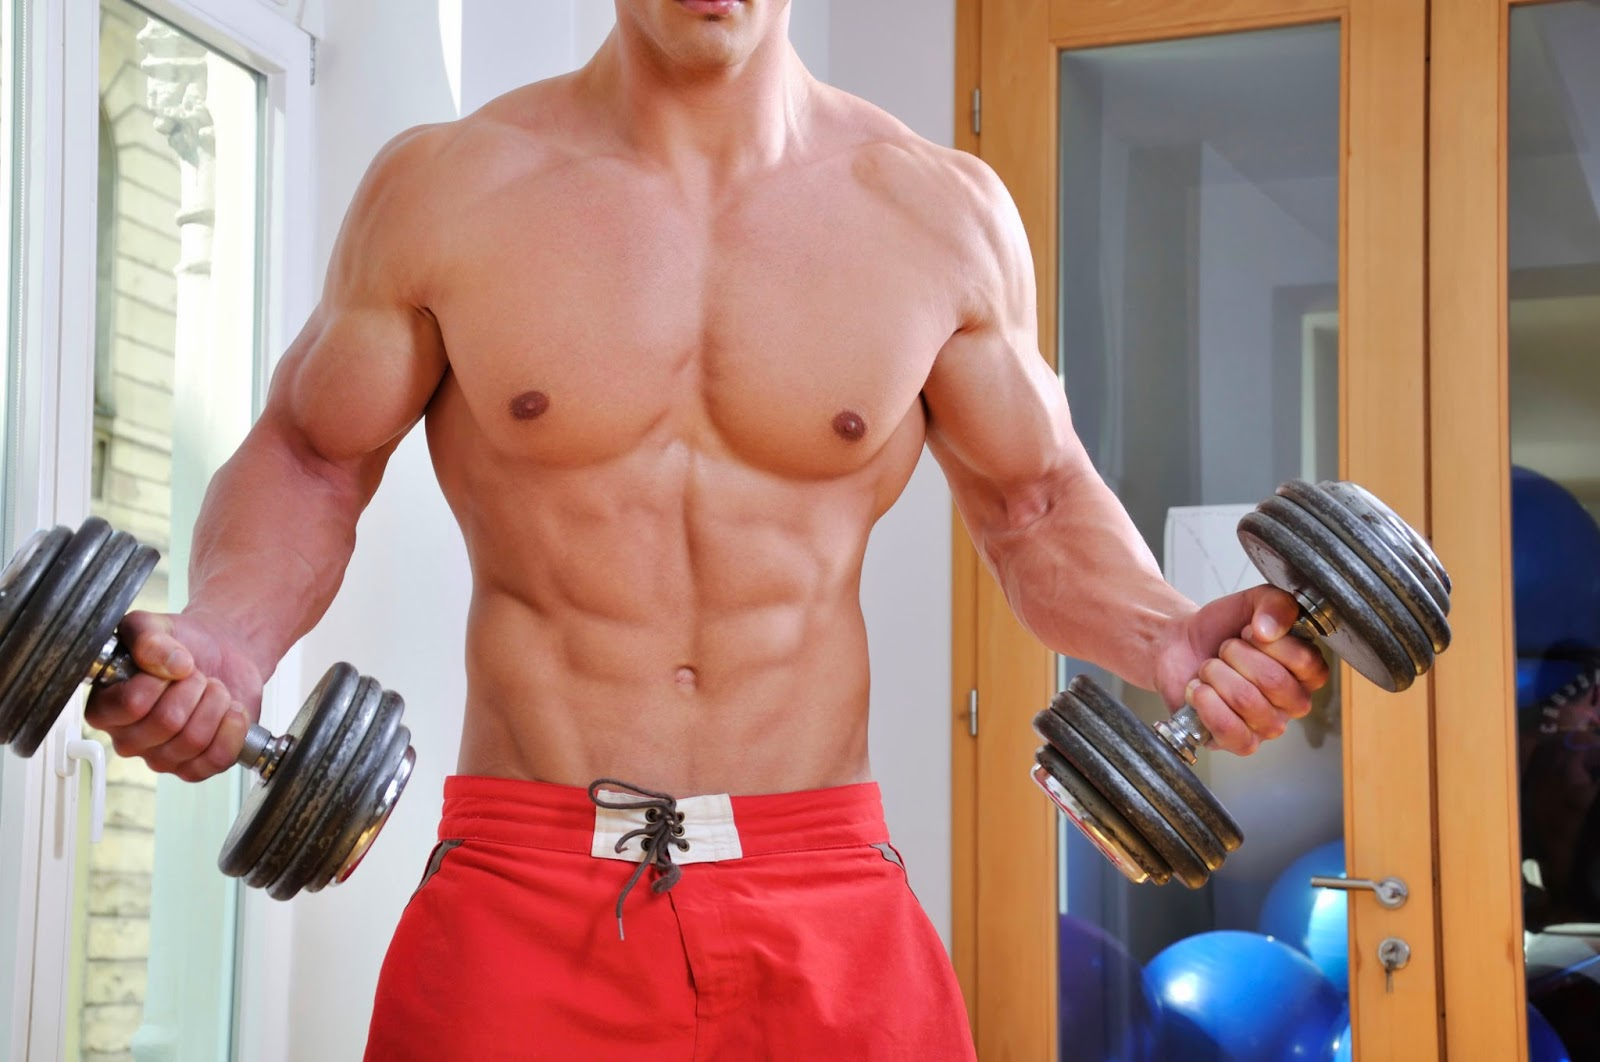 Best Way To Gain Muscle - Weight Training Tips For Skinny Guys